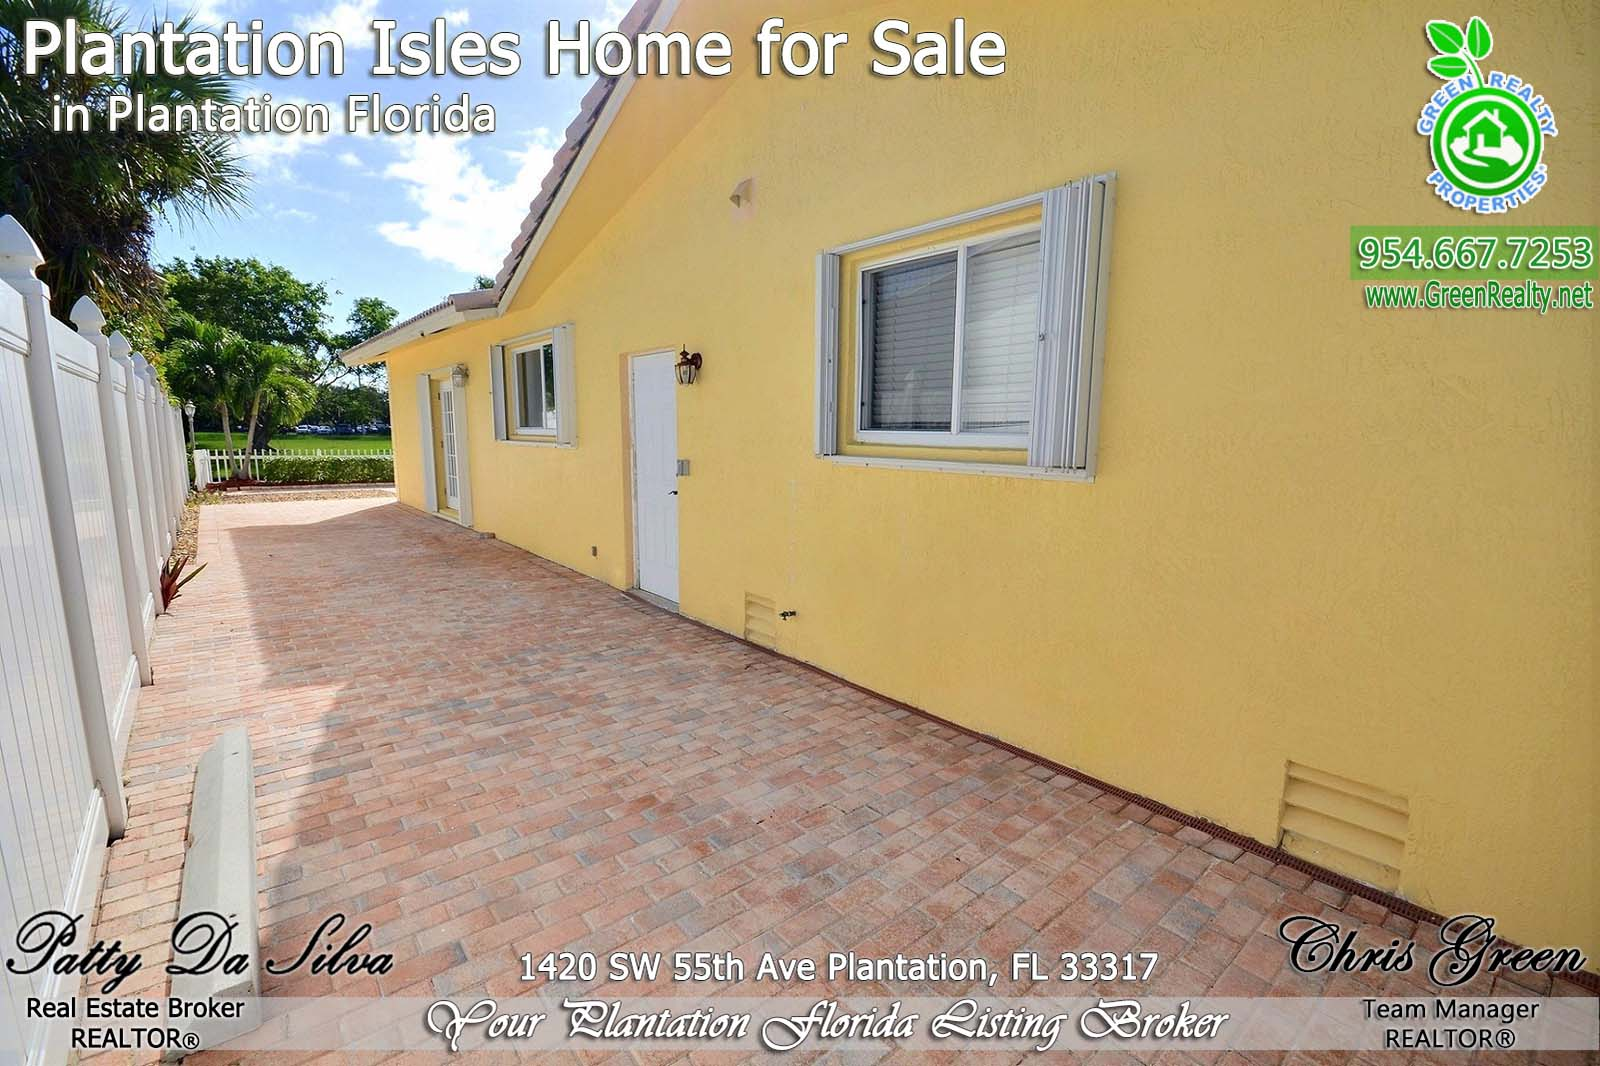 30 Plantation Florida Homes For Sale (3)